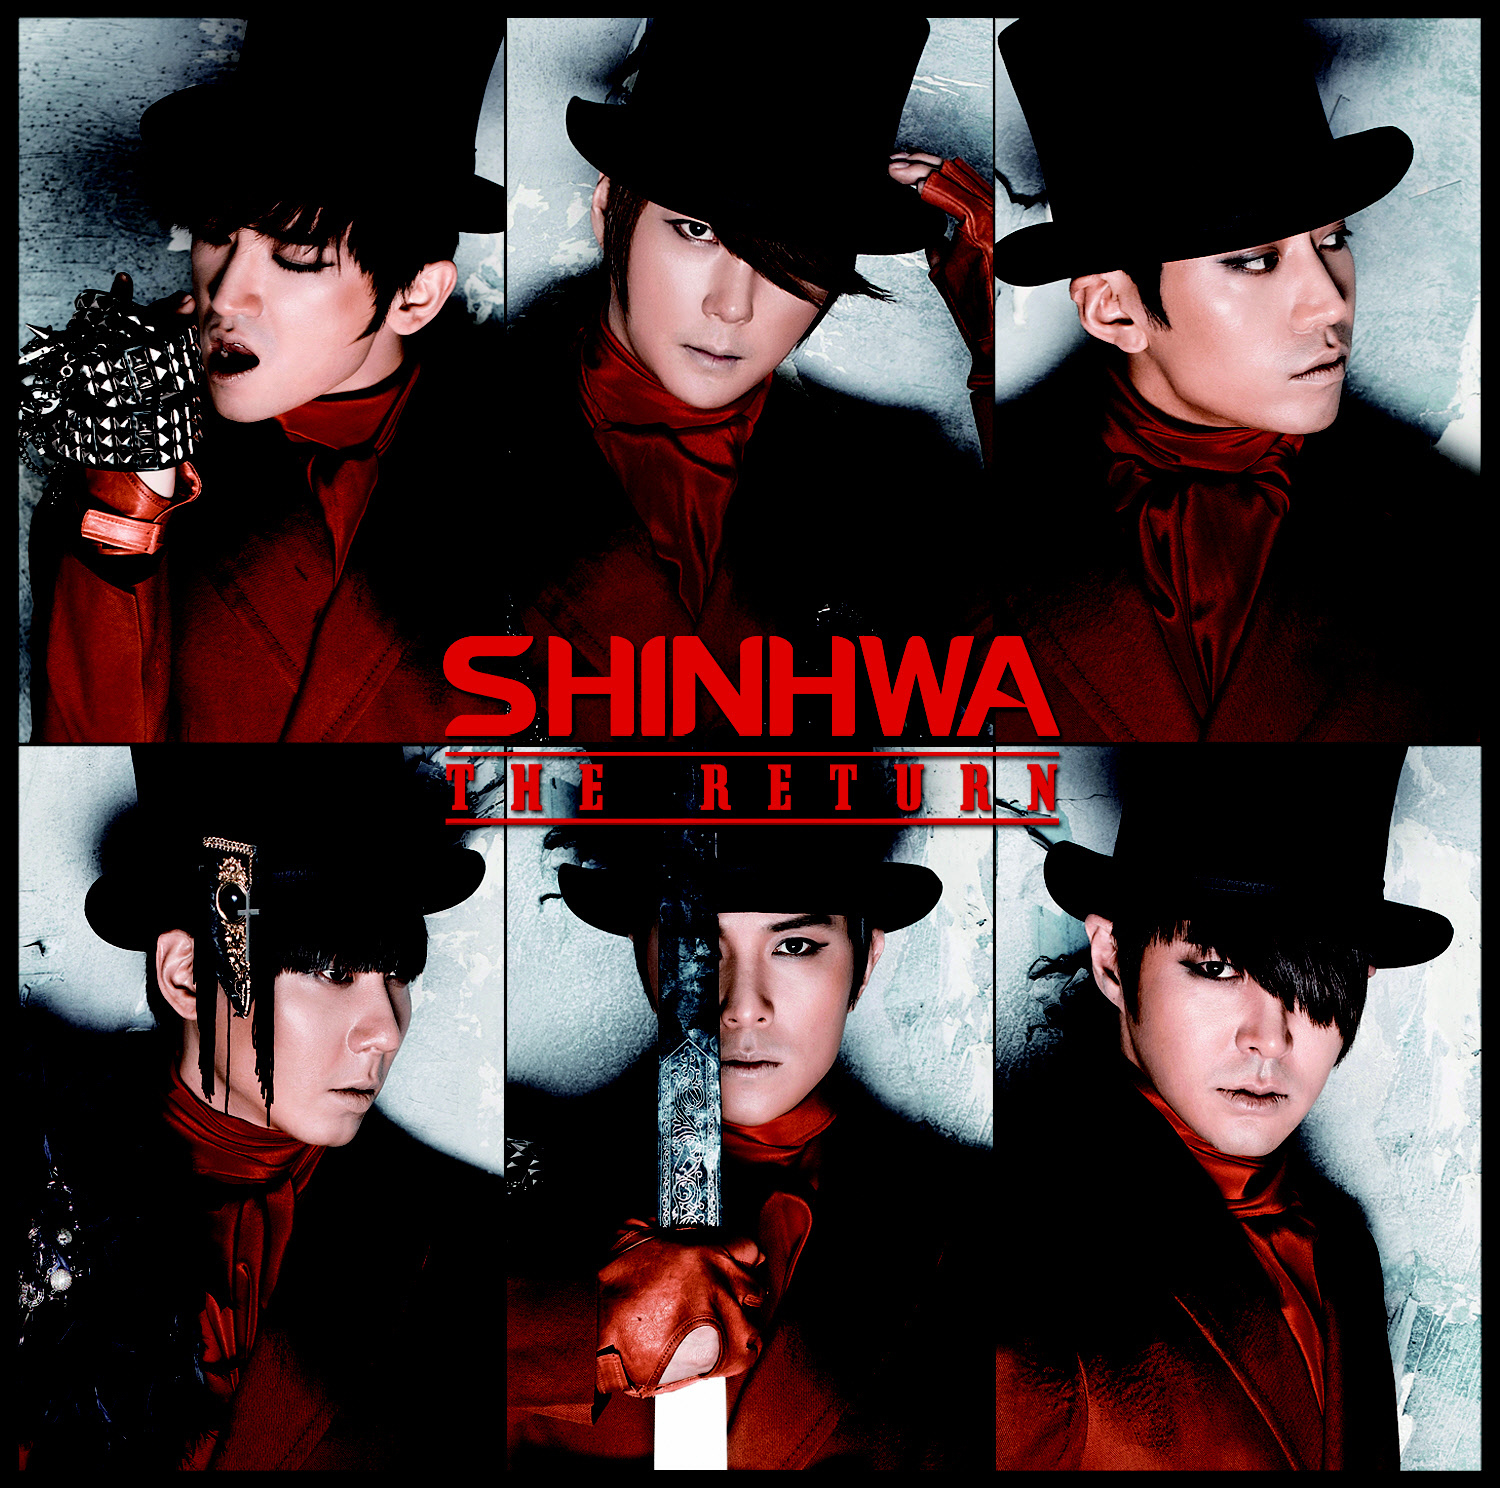 Shinhwa The Return